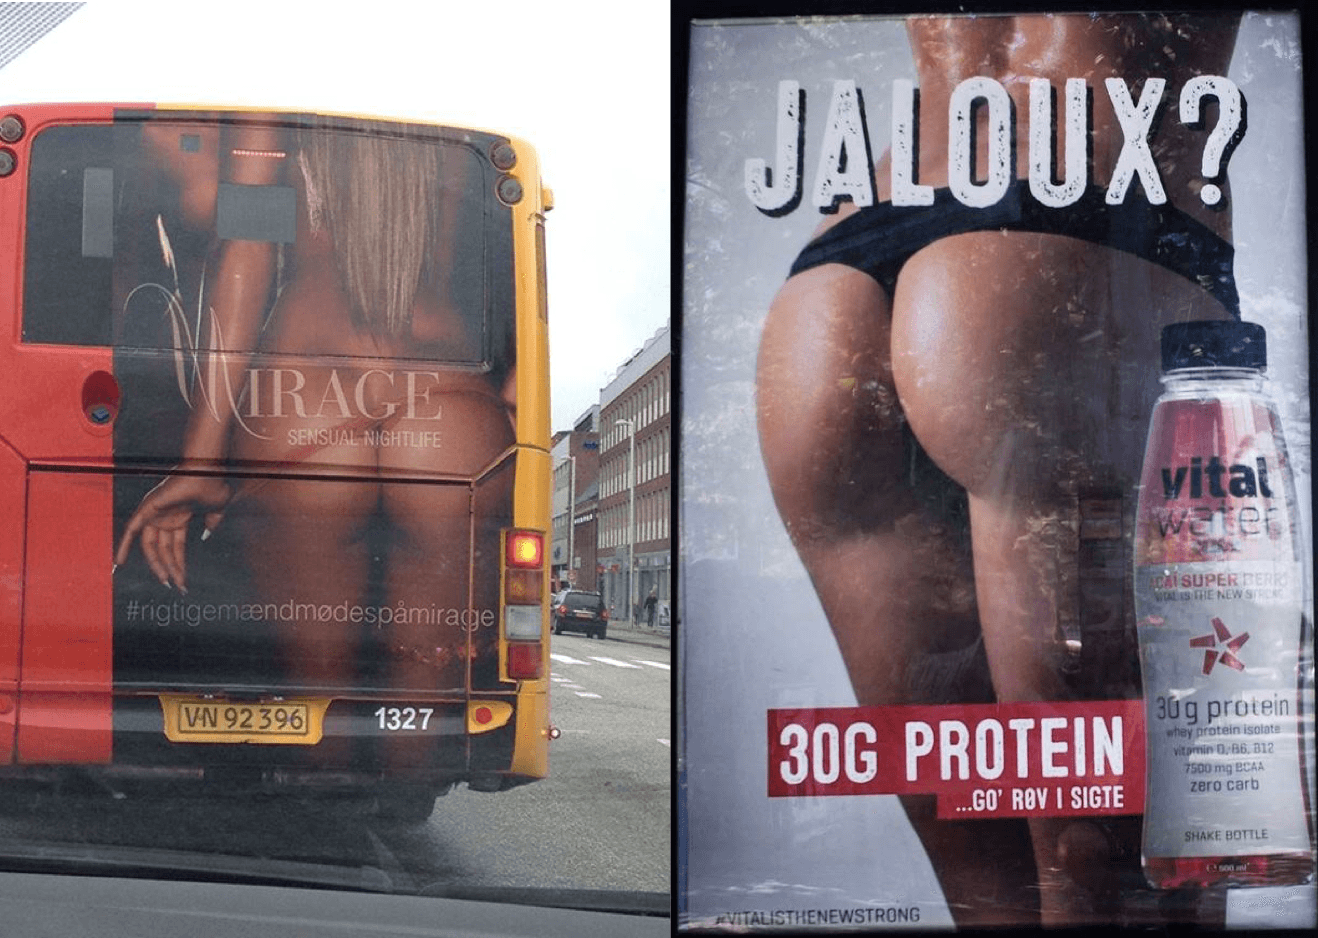 mand til mand massage sex i bus